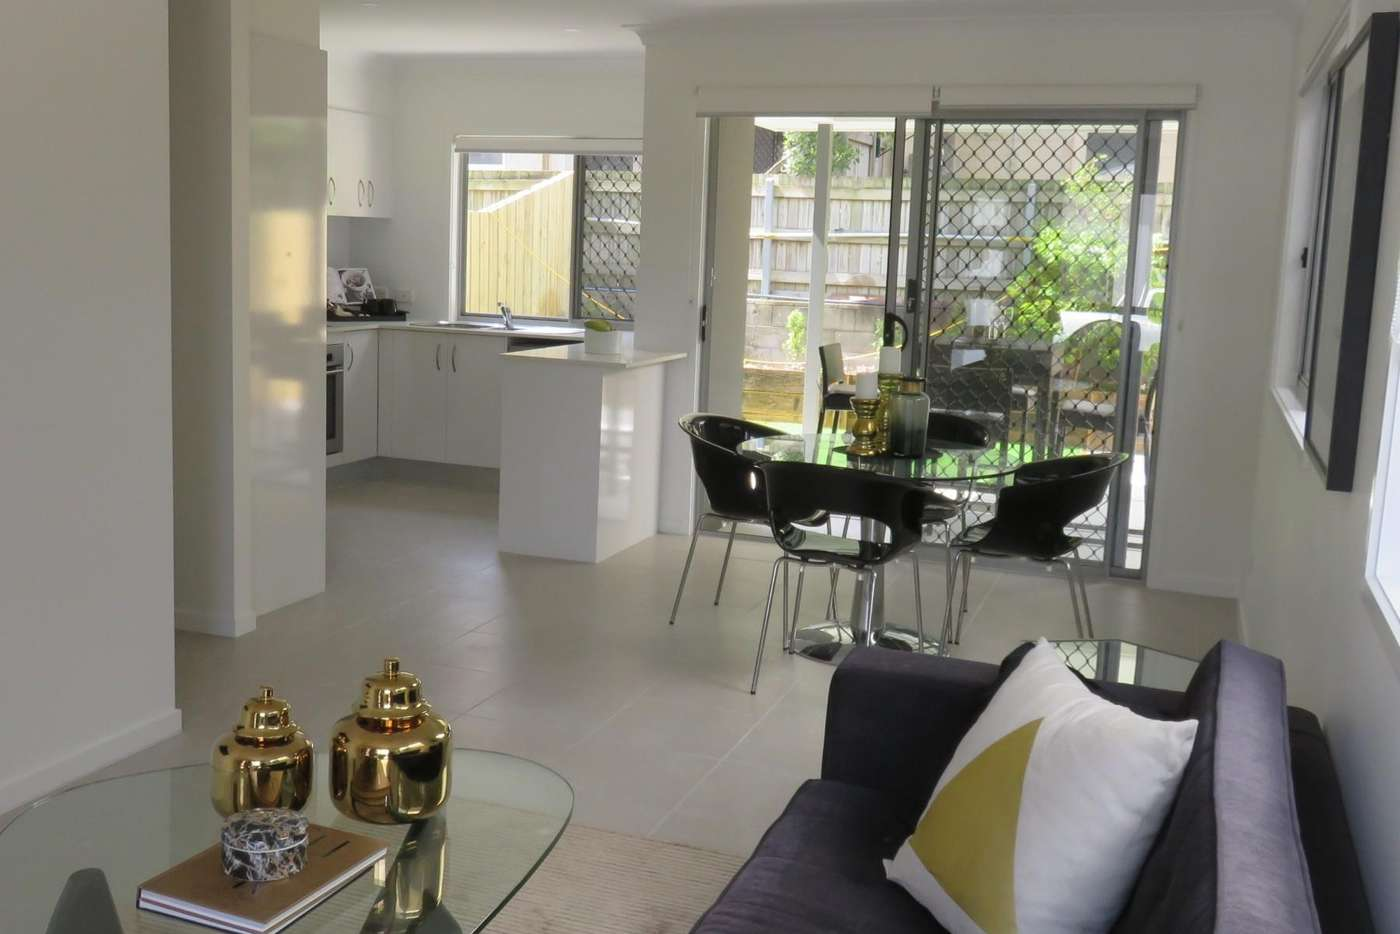 Seventh view of Homely townhouse listing, LN:10148/63 Harlen Rd, Salisbury QLD 4107